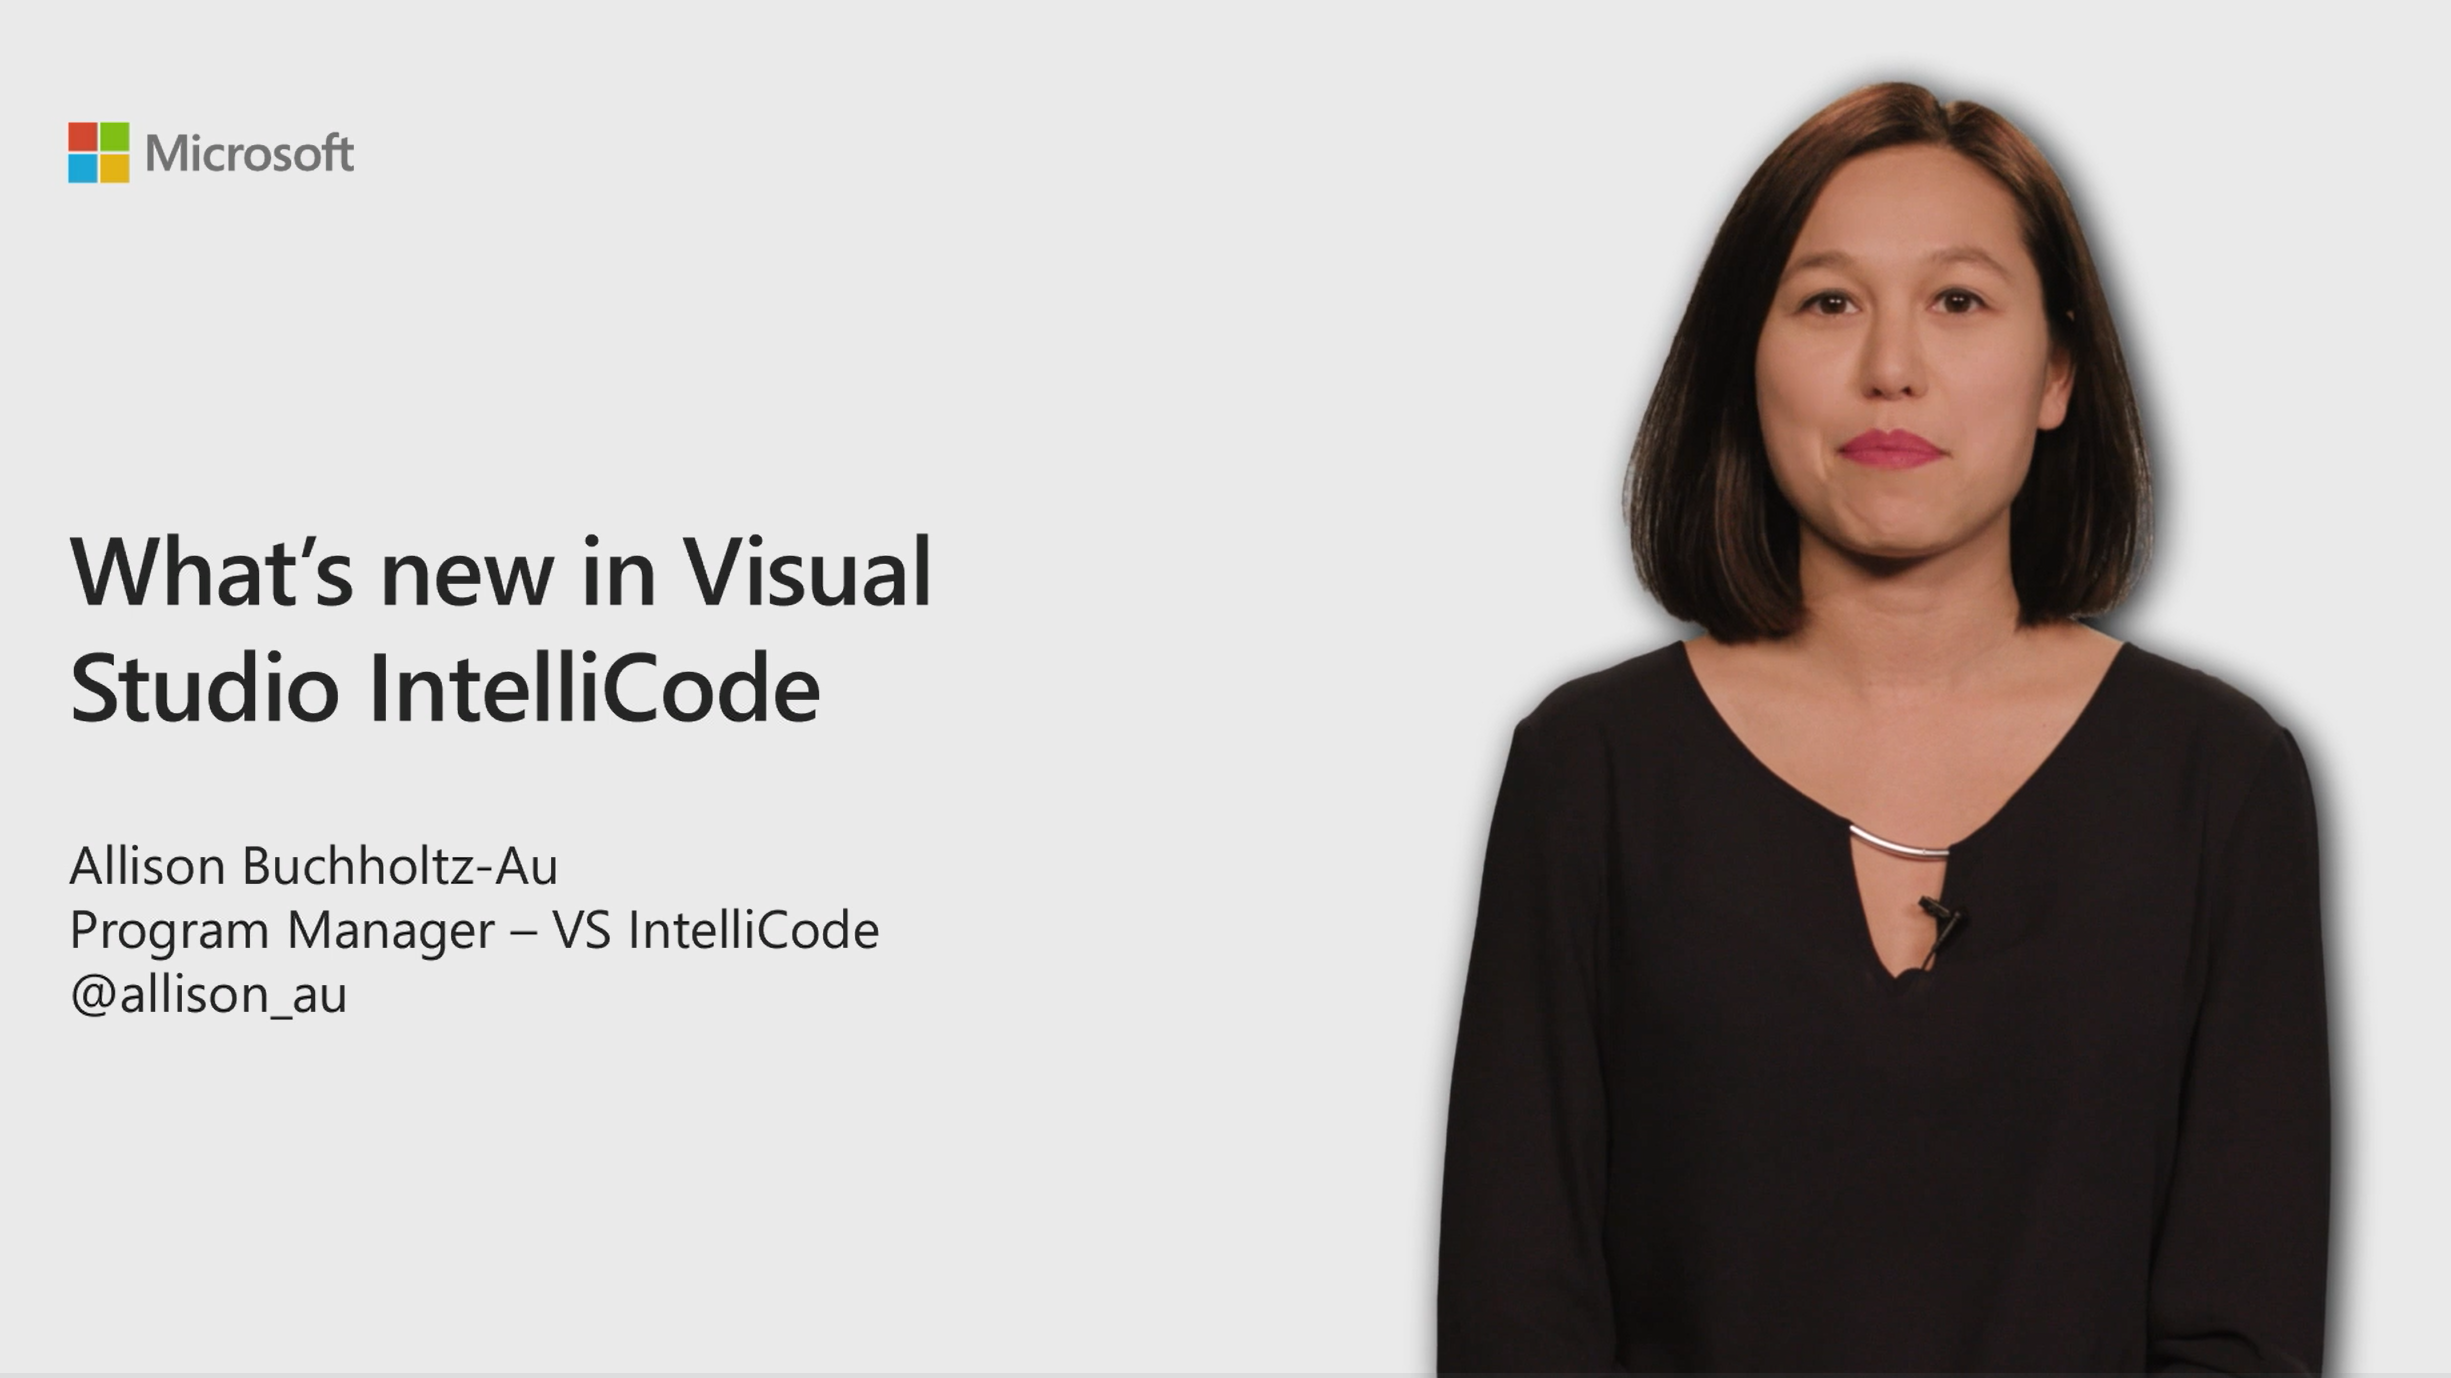 What's new in Visual Studio IntelliCode